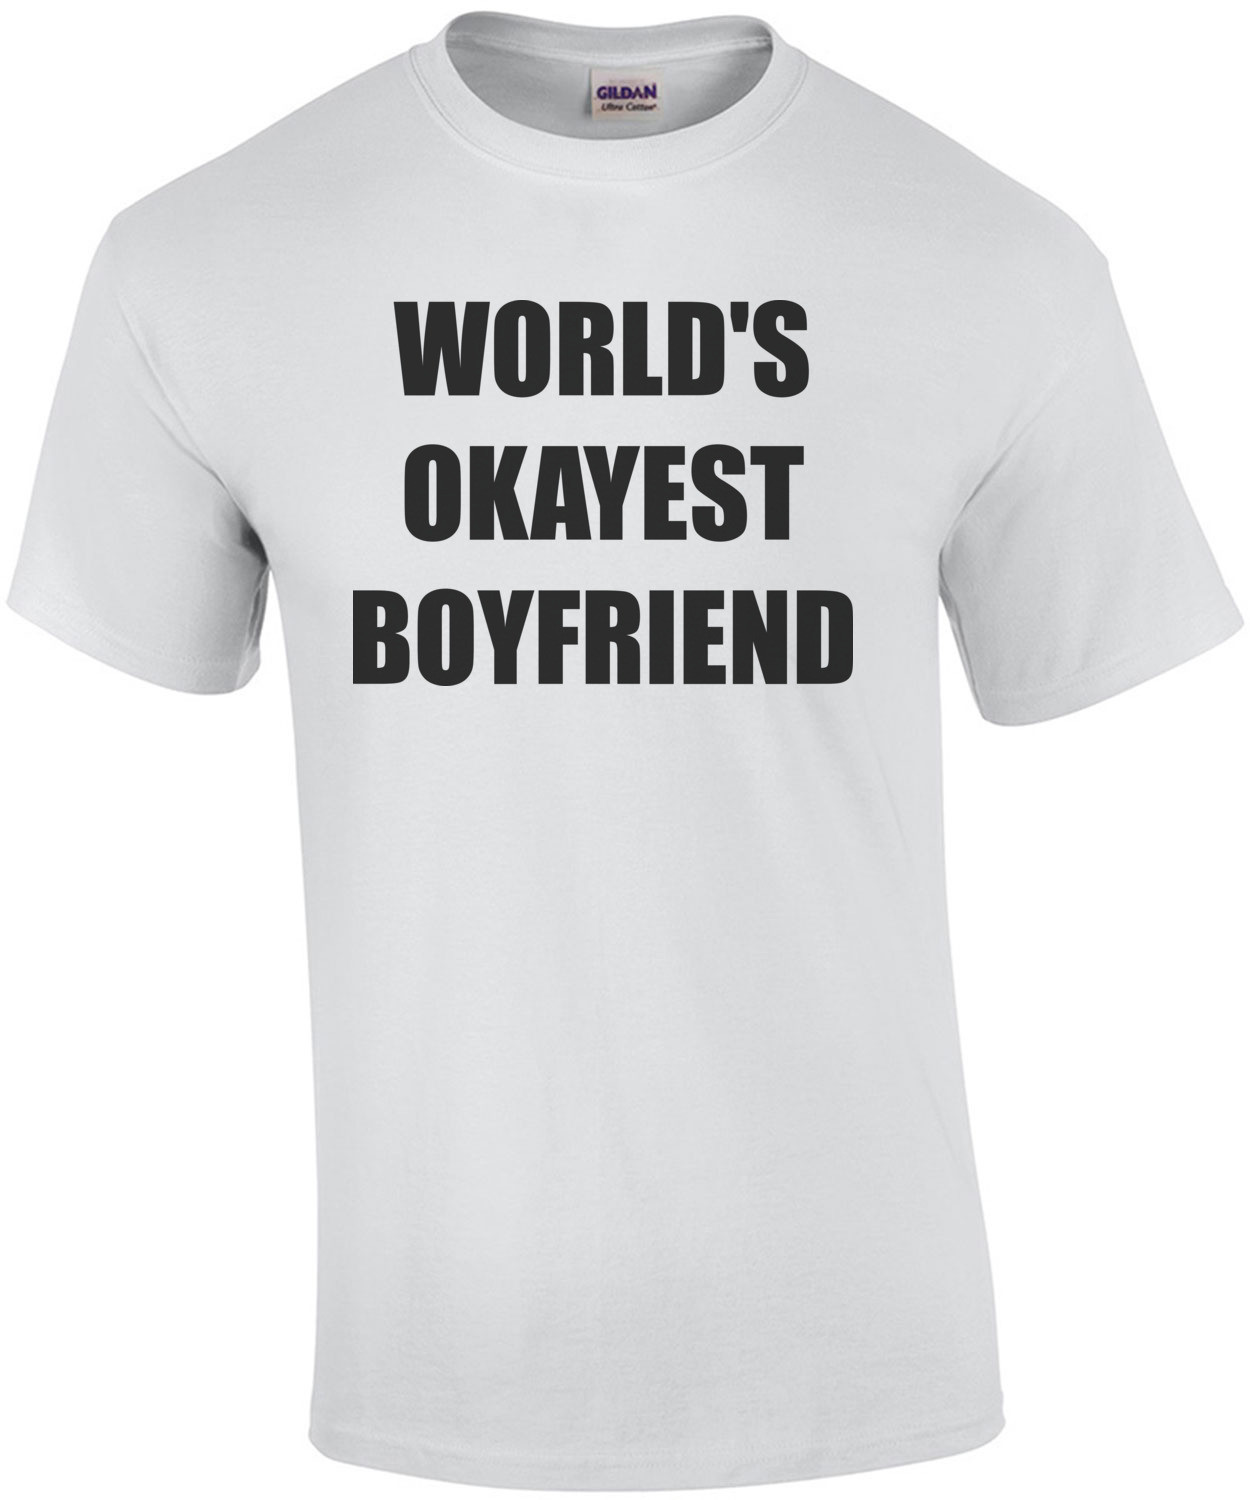 WORLD'S OKAYEST BOYFRIEND Shirt